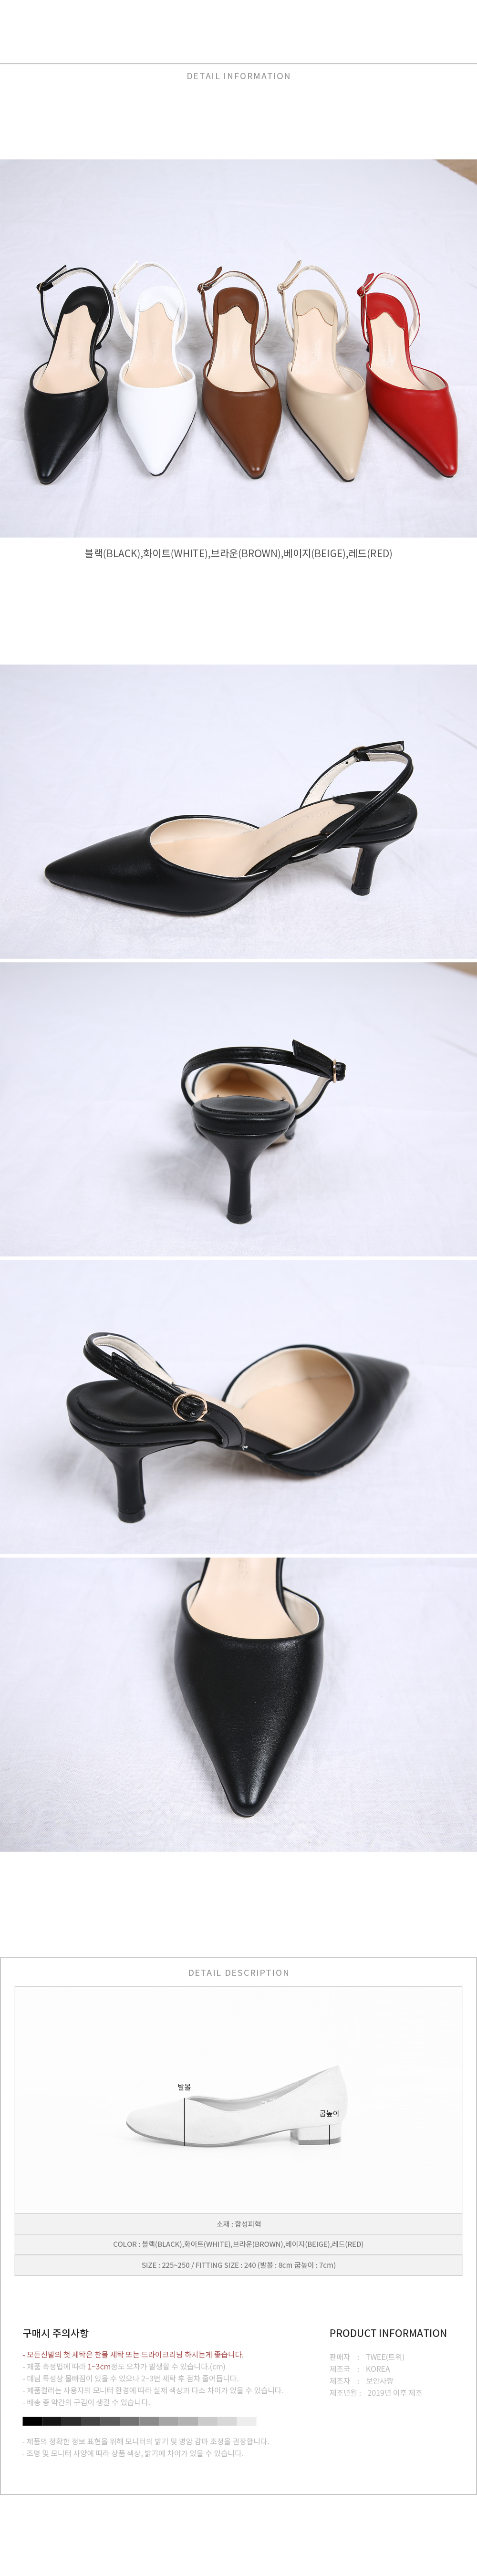 Real Line Shoes